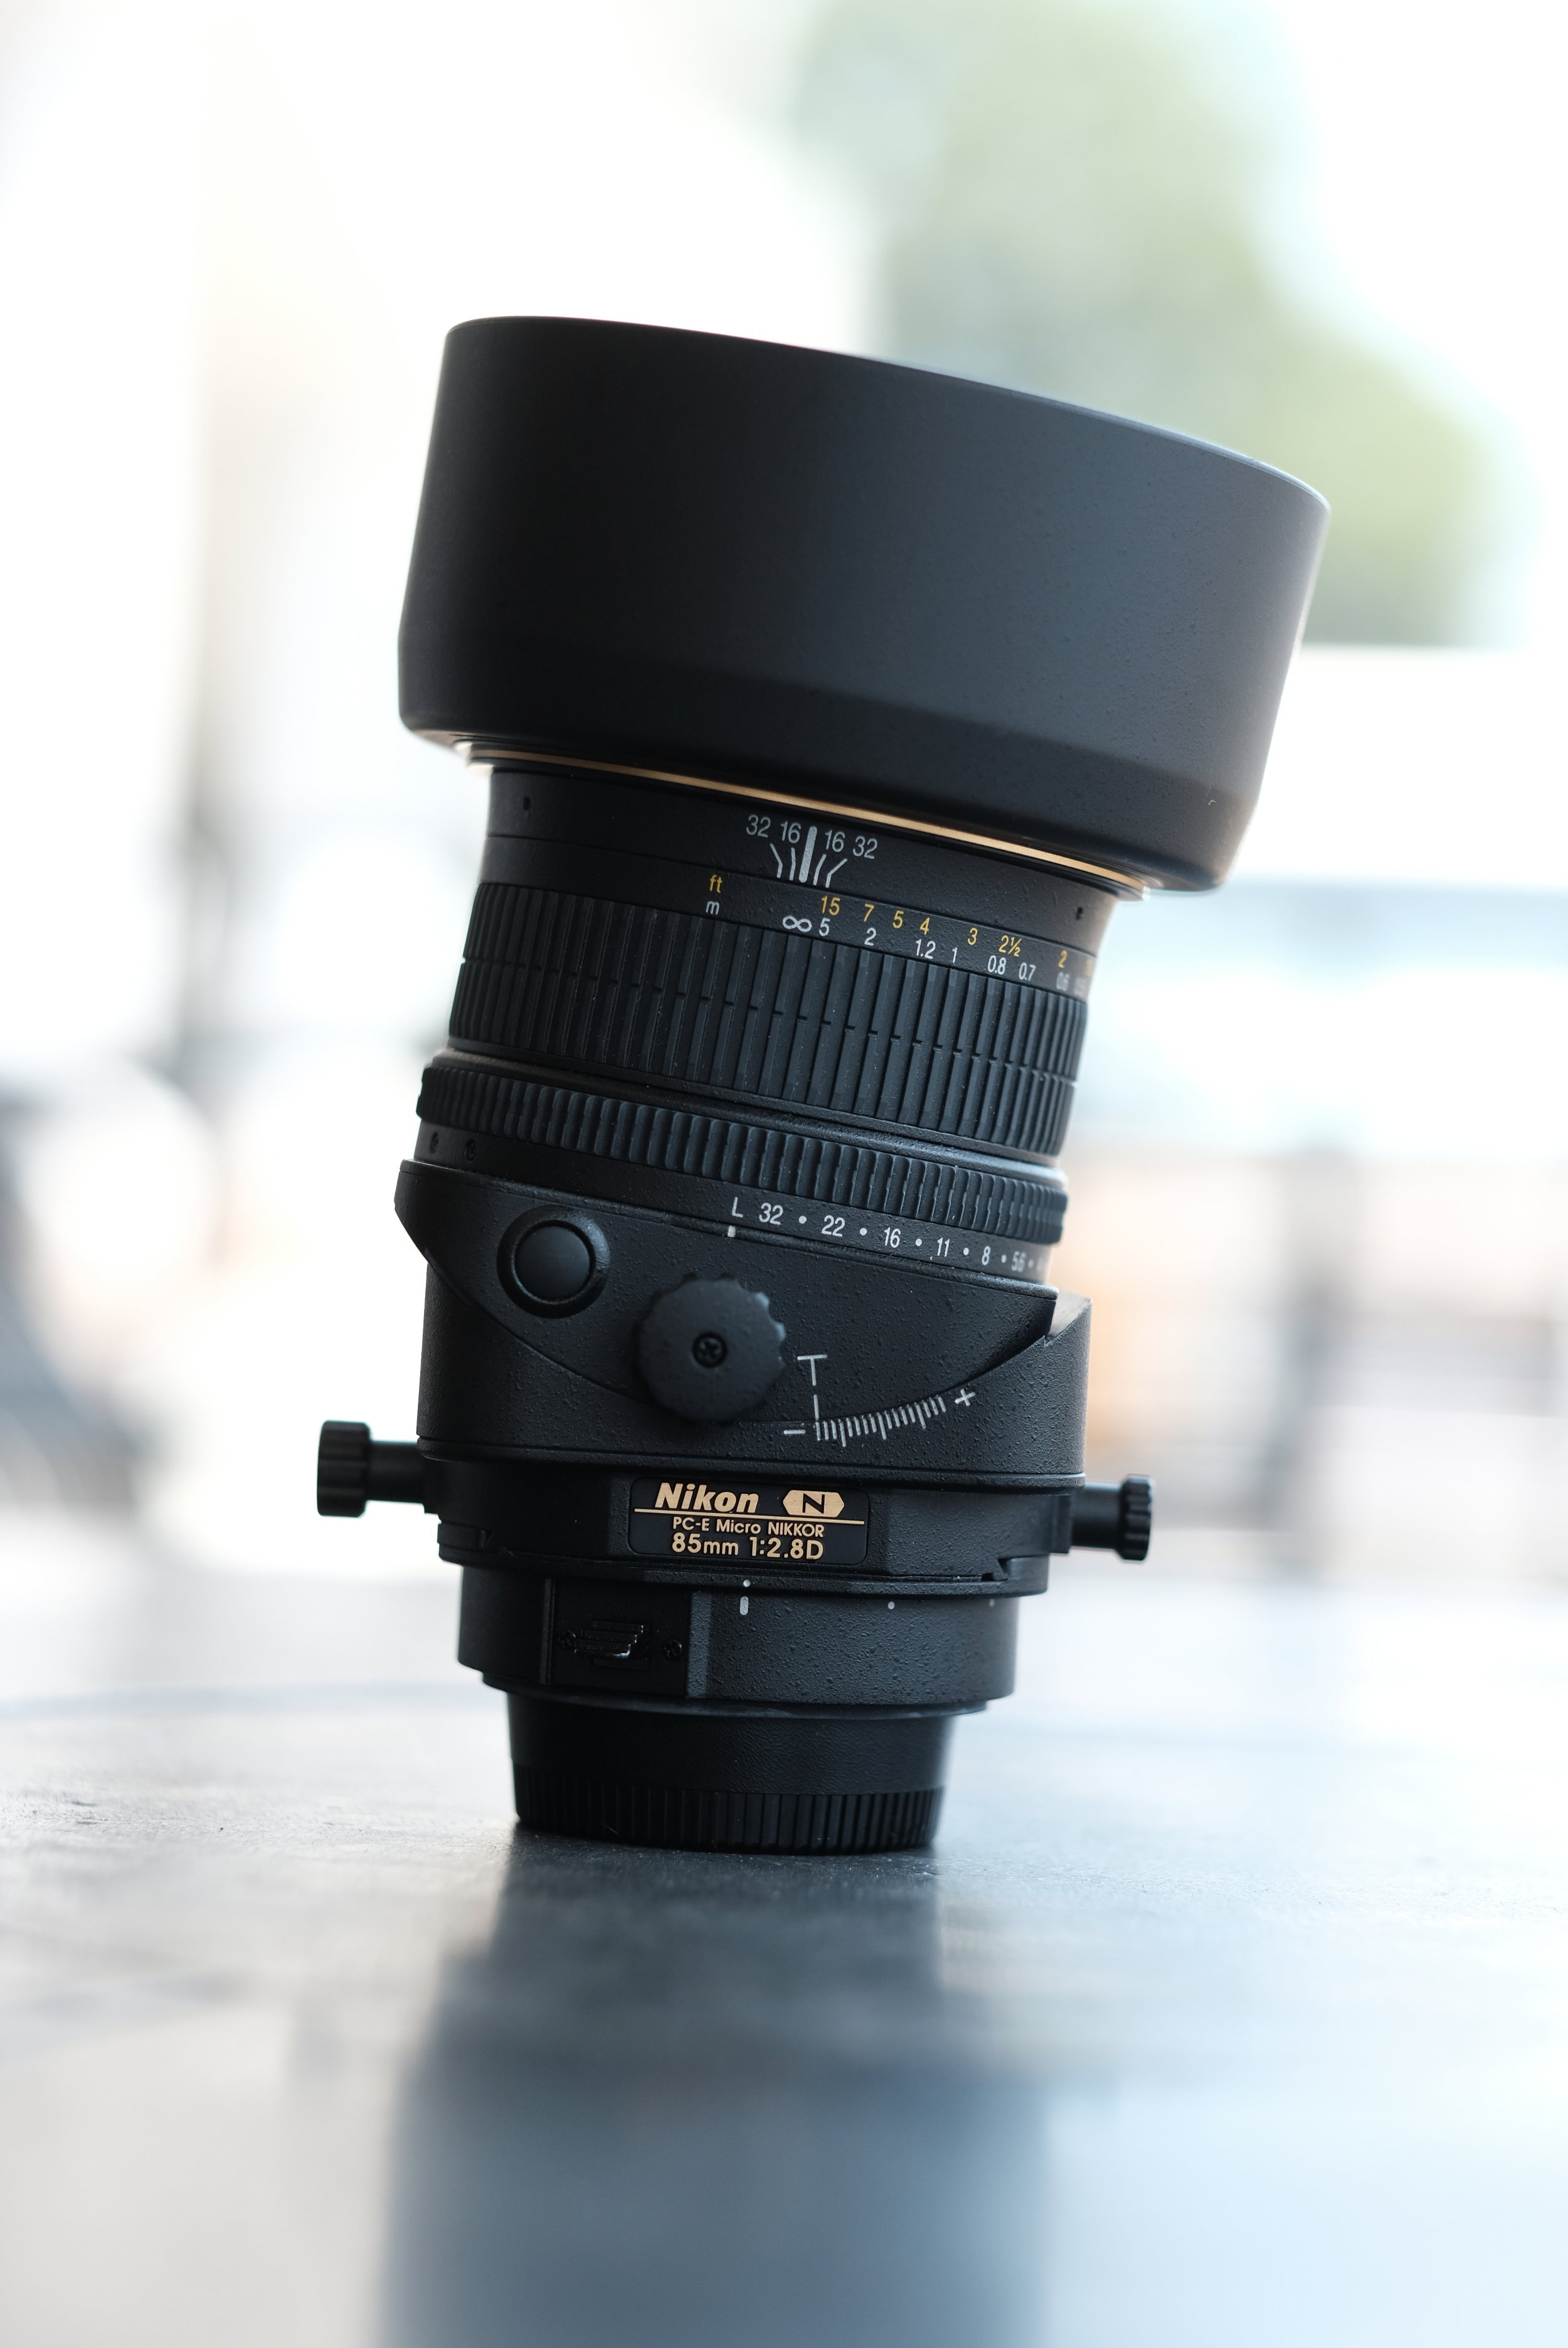 PC-E Micro Nikkor 85mm f/2.8 N - Commercial photographers rejoice! The 85 PC-E is a full frame tilt shift lens. Nikon's Close Range Correction system allows this lens to focus at a wide range of distances by utilizing a floating lens group design. The 1:2 macro perspective will make this lens right at home in any commercial studio or macro photographer's gear bag. The used copy we have is very clean and with our 90 day warranty is a home run for any serious photographer that needs a seriously versatile lens.